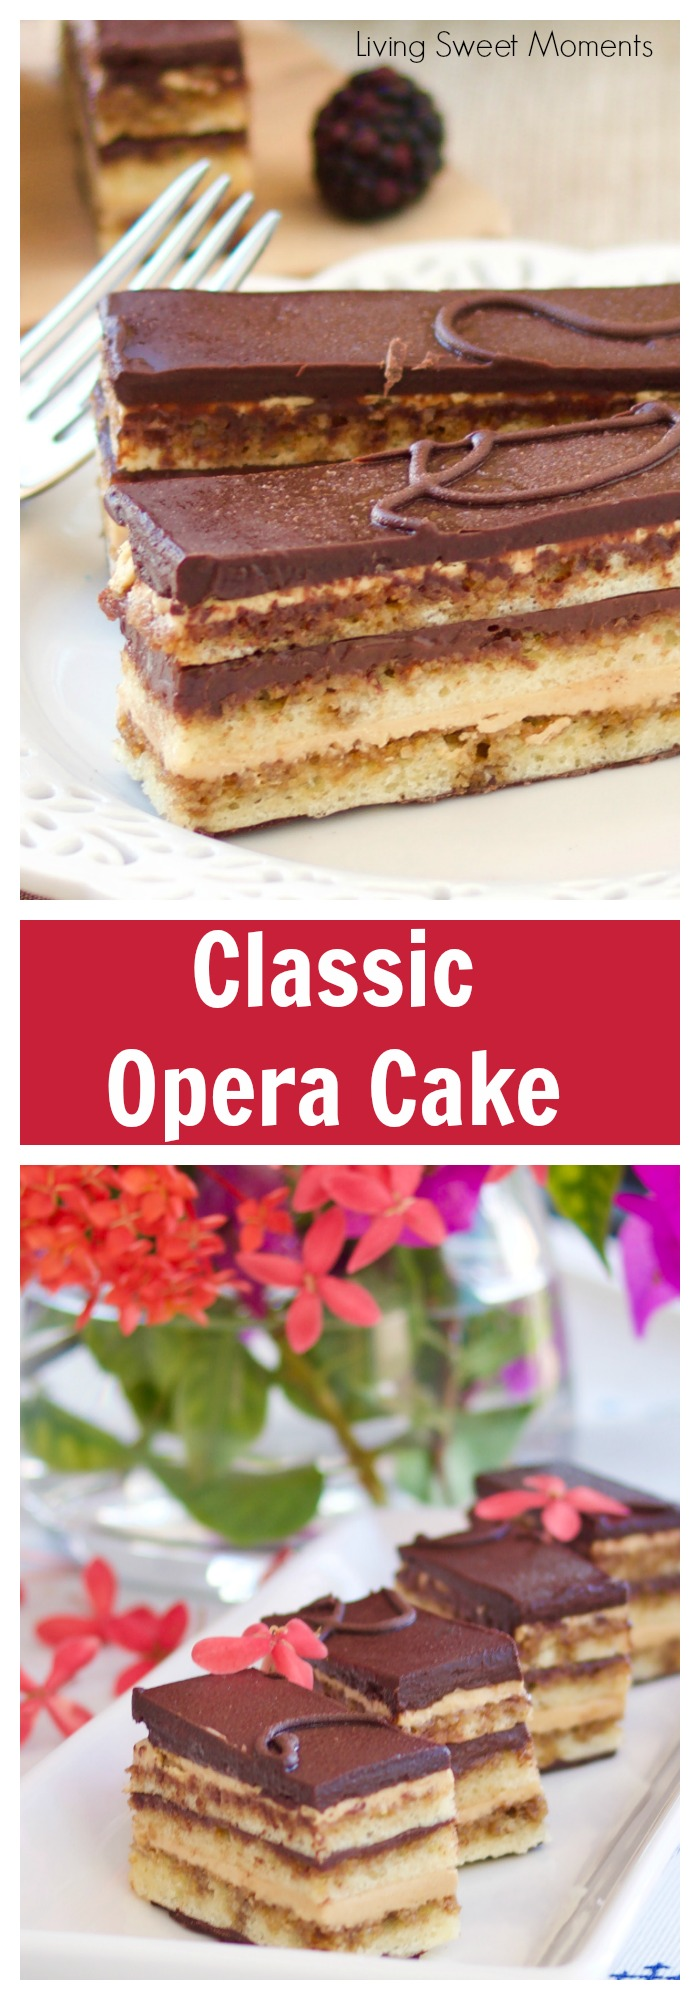 My favorite French dessert. This scrumptious classic Opera Cake recipe is composed of 7 layers of cake, chocolate, and coffee flavored french buttercream. More French desserts at livingsweetmoments.com